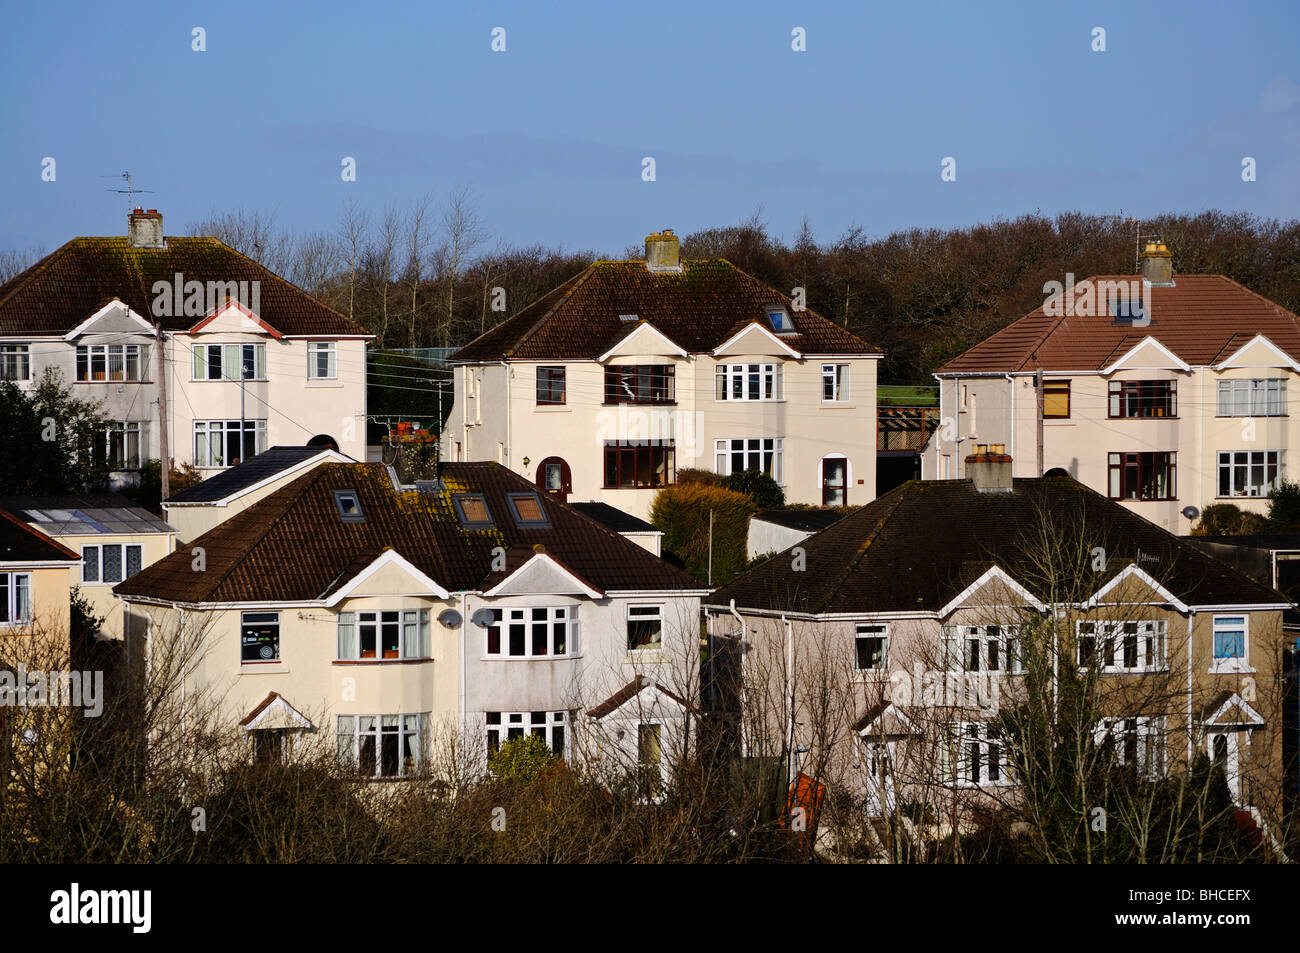 1950's semi detached houses in truro, cornwall, uk - Stock Image